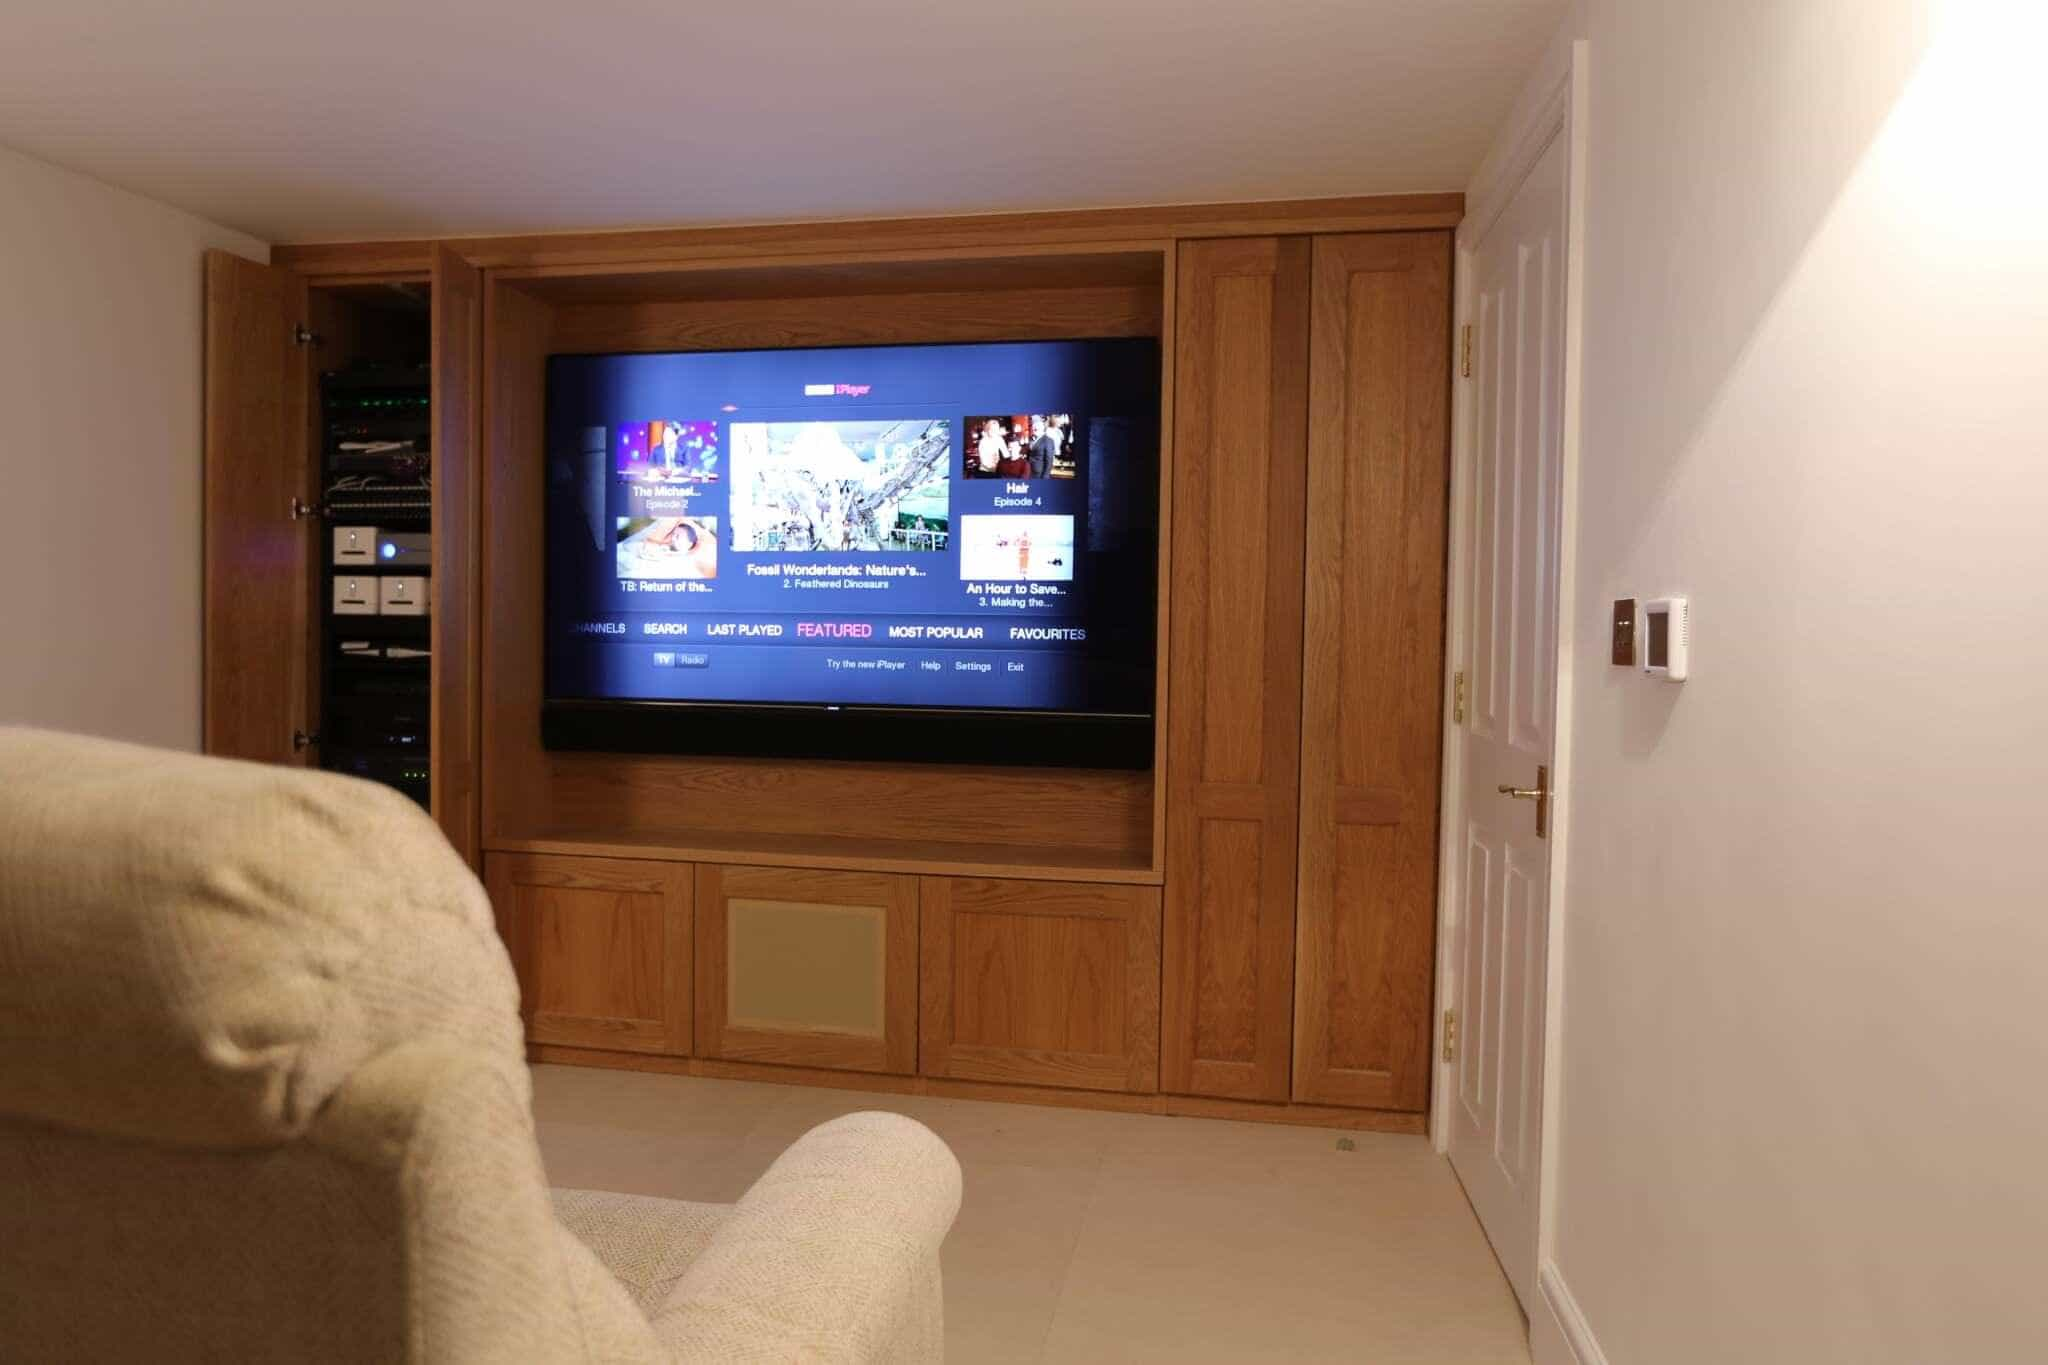 Pimlico Basement Home Cinema Room - Showing AV Rack